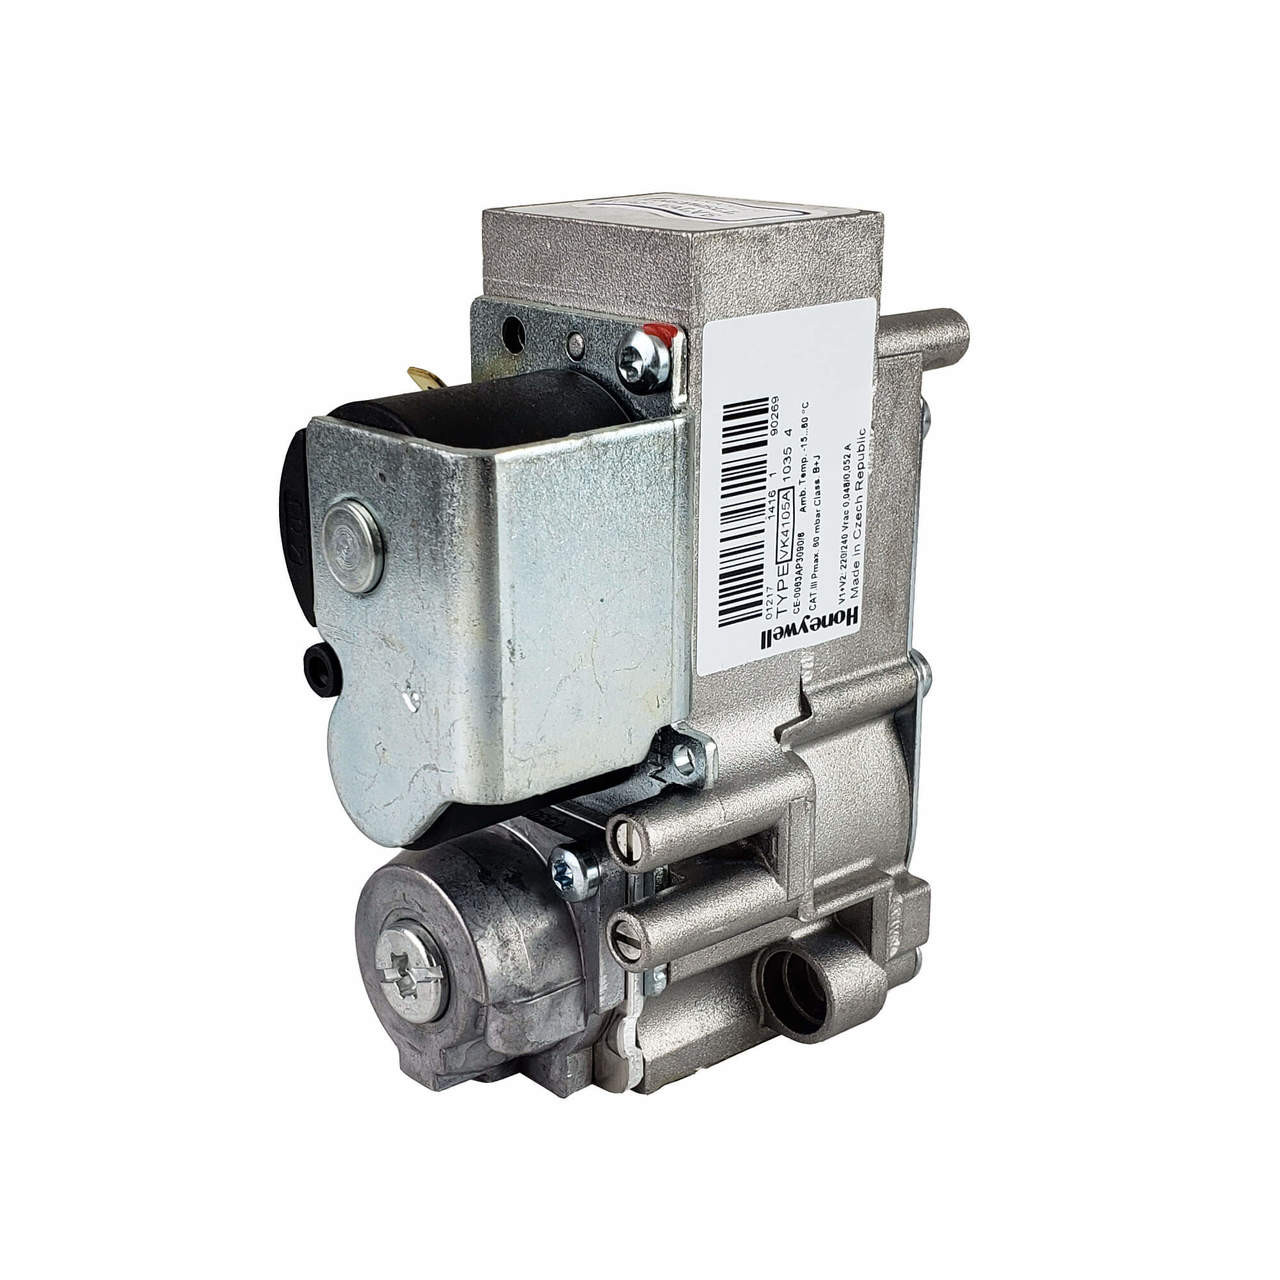 Bromic gas valve opposite side view